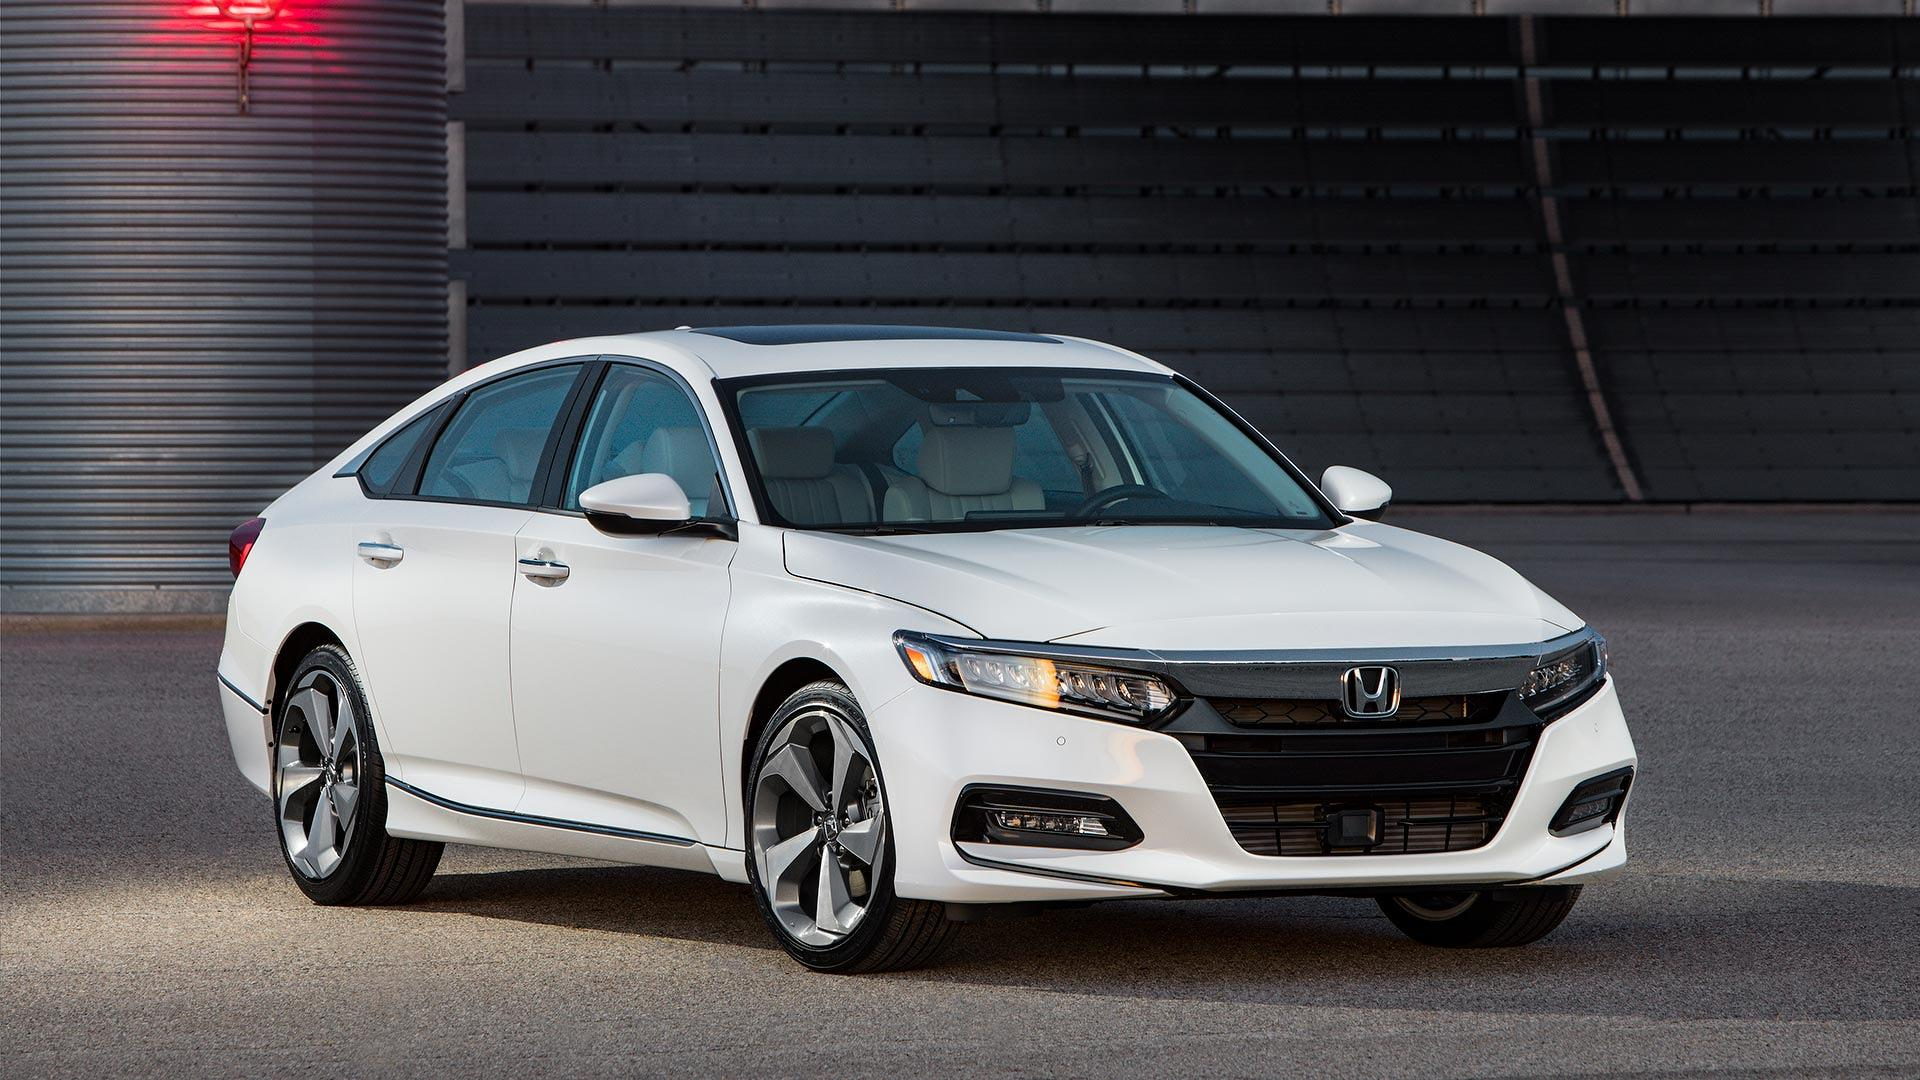 Honda Accord Awd >> 6 More Things To Know About The 2018 Honda Accord